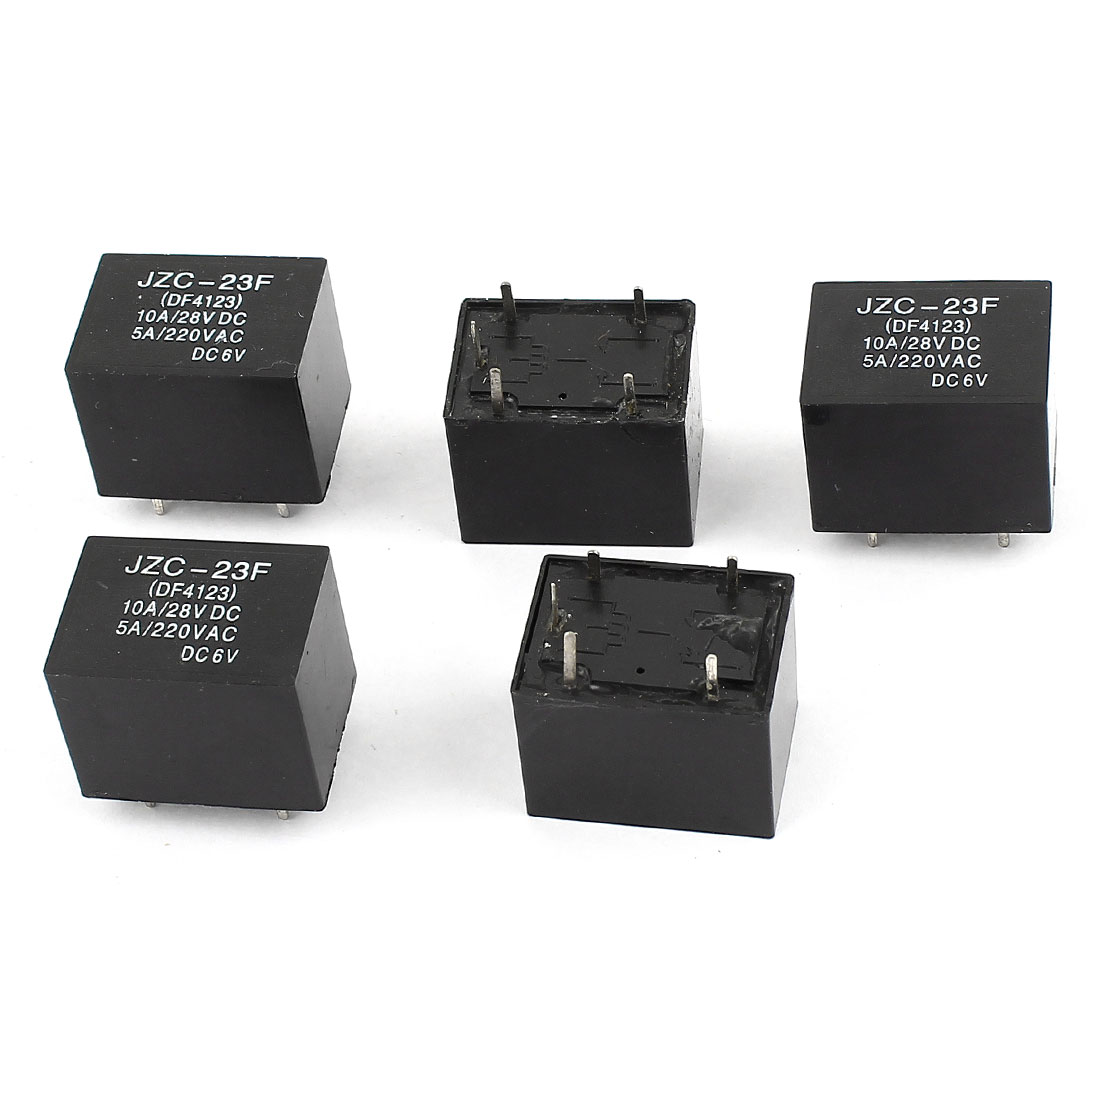 5 Pcs JZC-23F 5Pin SPDT General Purpose Power Electromagnetic Relay Coil Voltage DC 6V